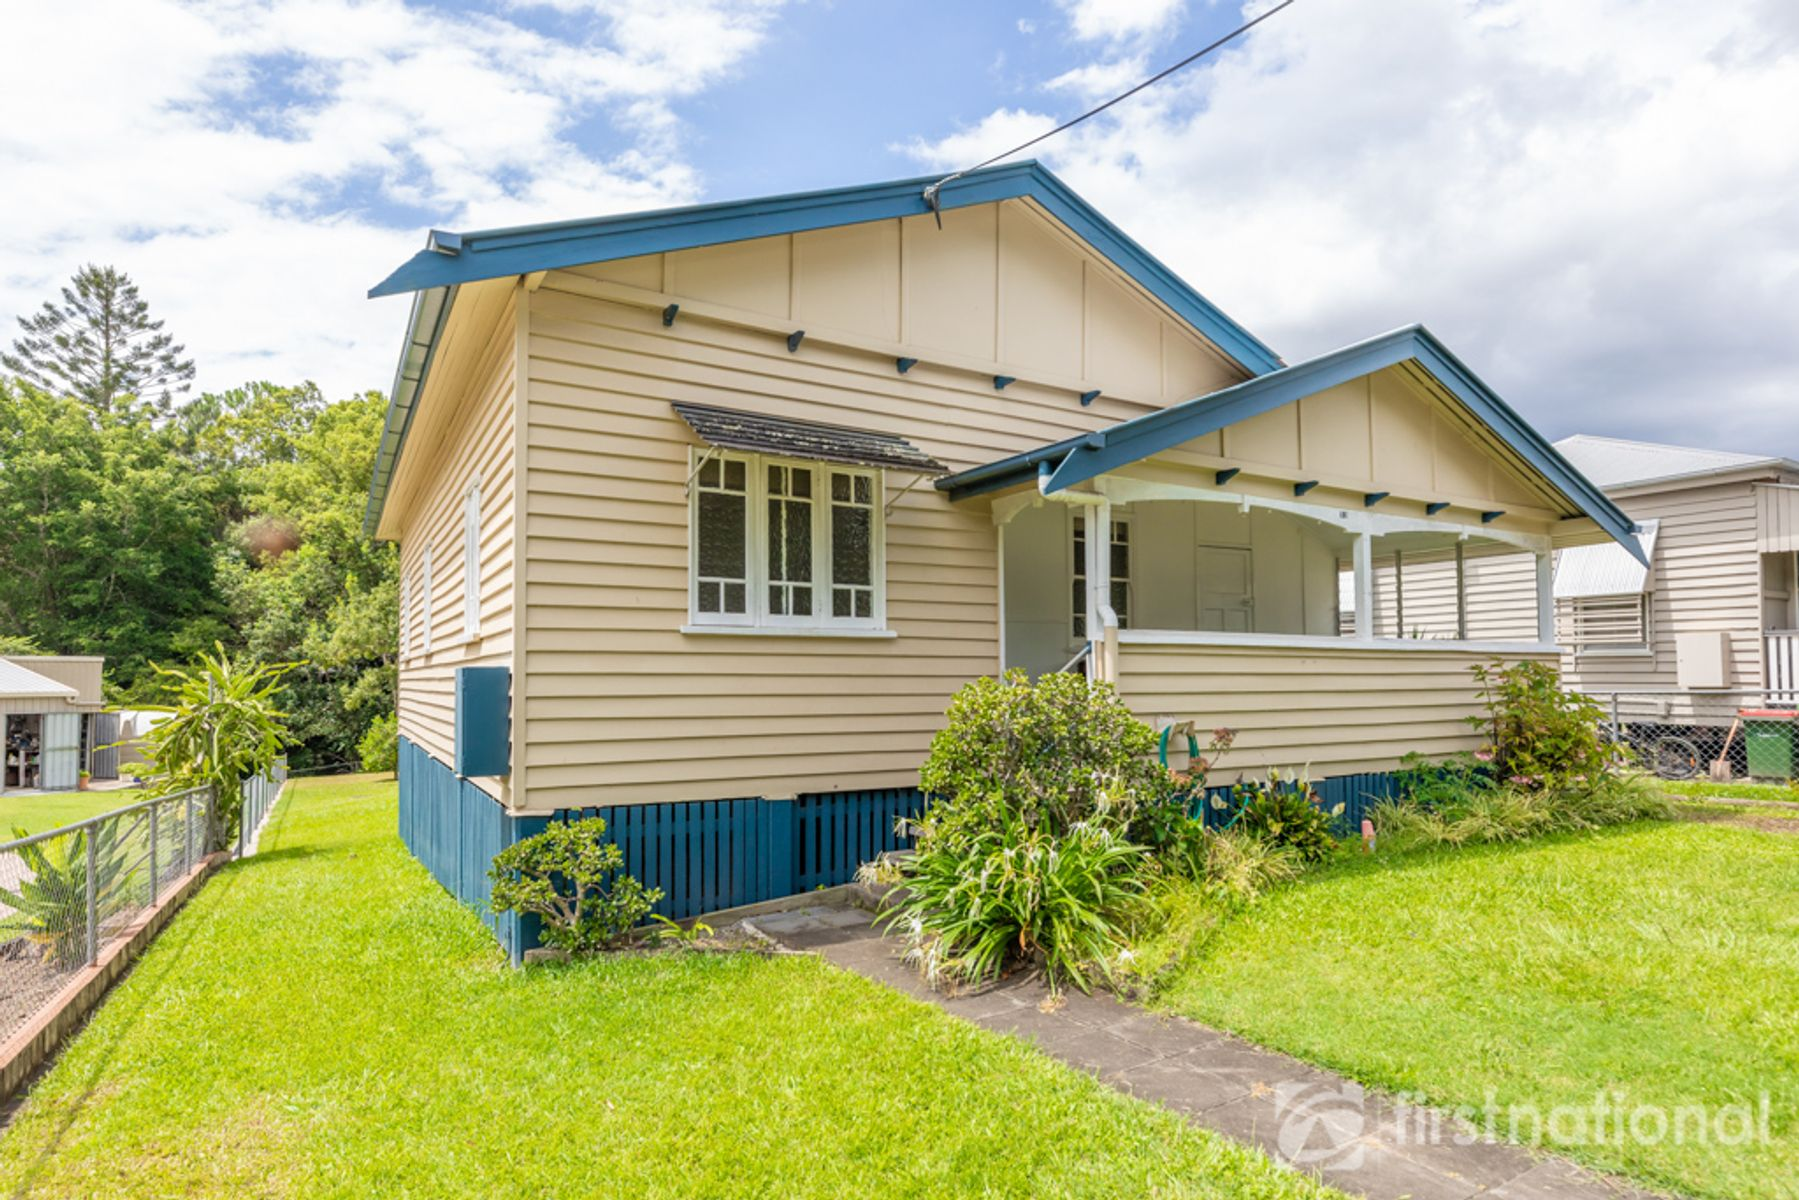 19 Gympie Street North, Landsborough, QLD 4550